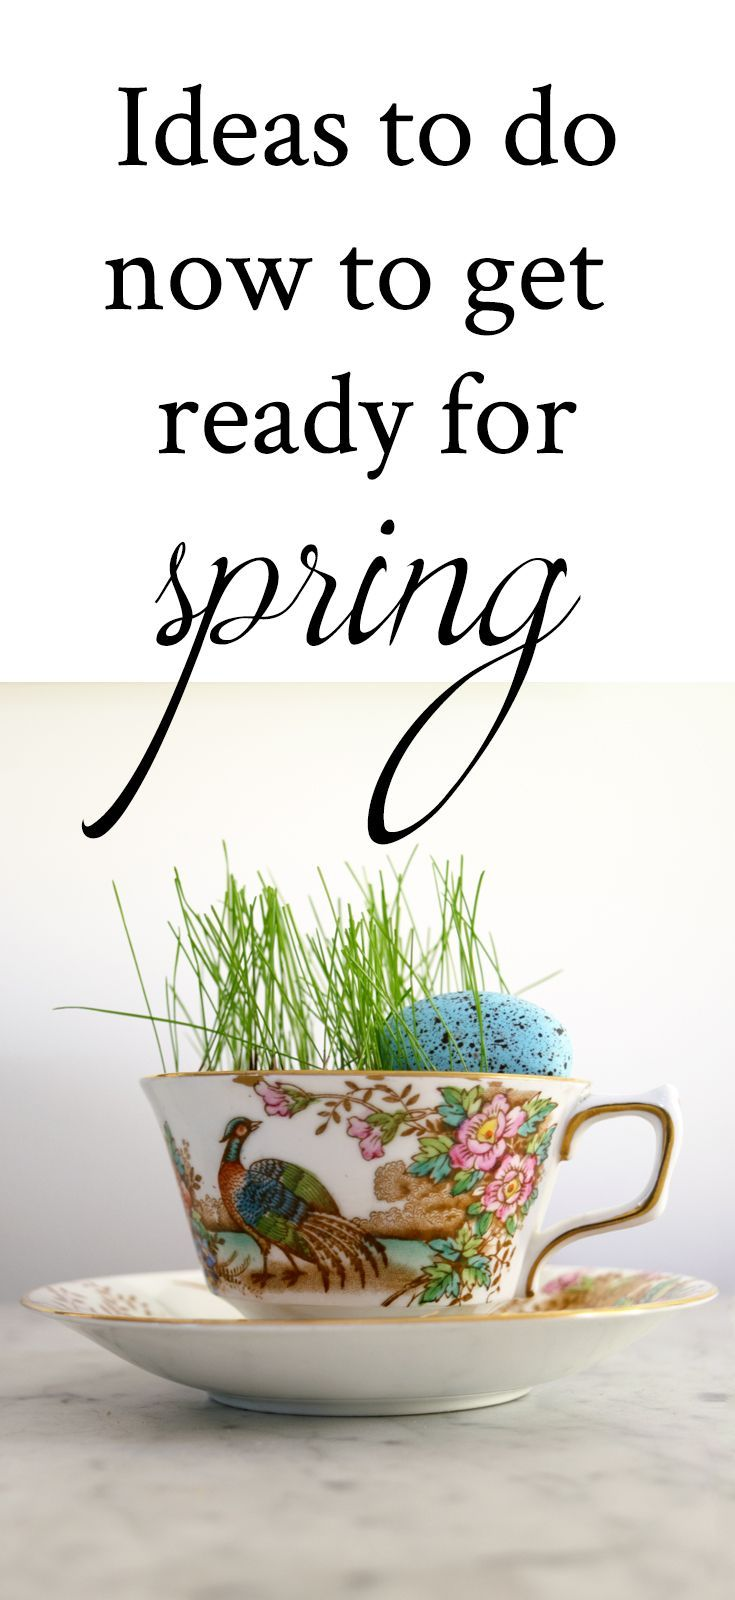 Easy Home Decor and Garden Ideas to get your home ready for Spring ...